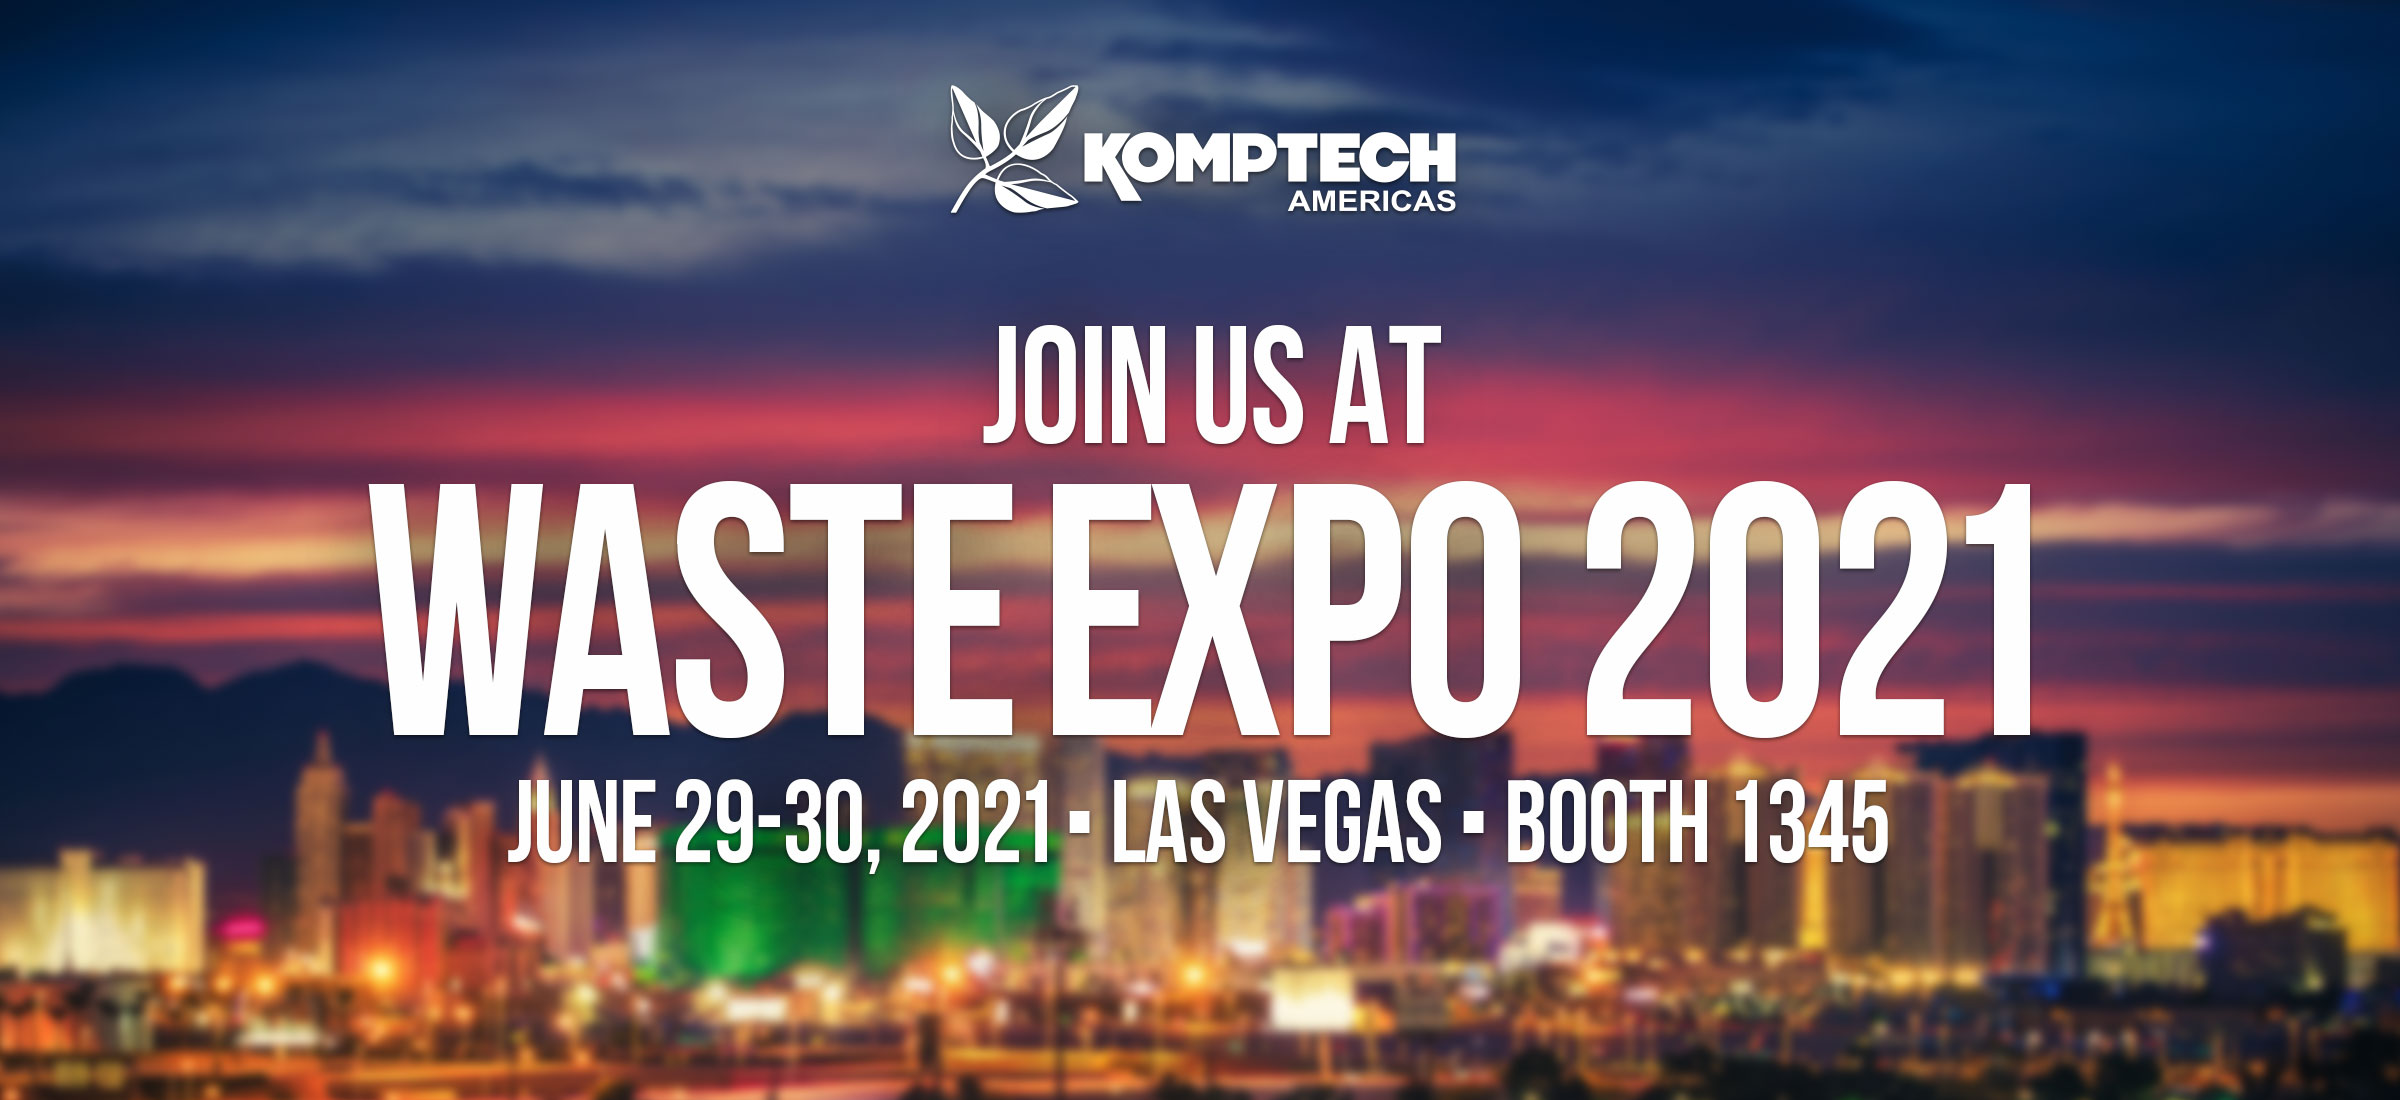 Join us at WasteExpo 2021 in Booth 1345